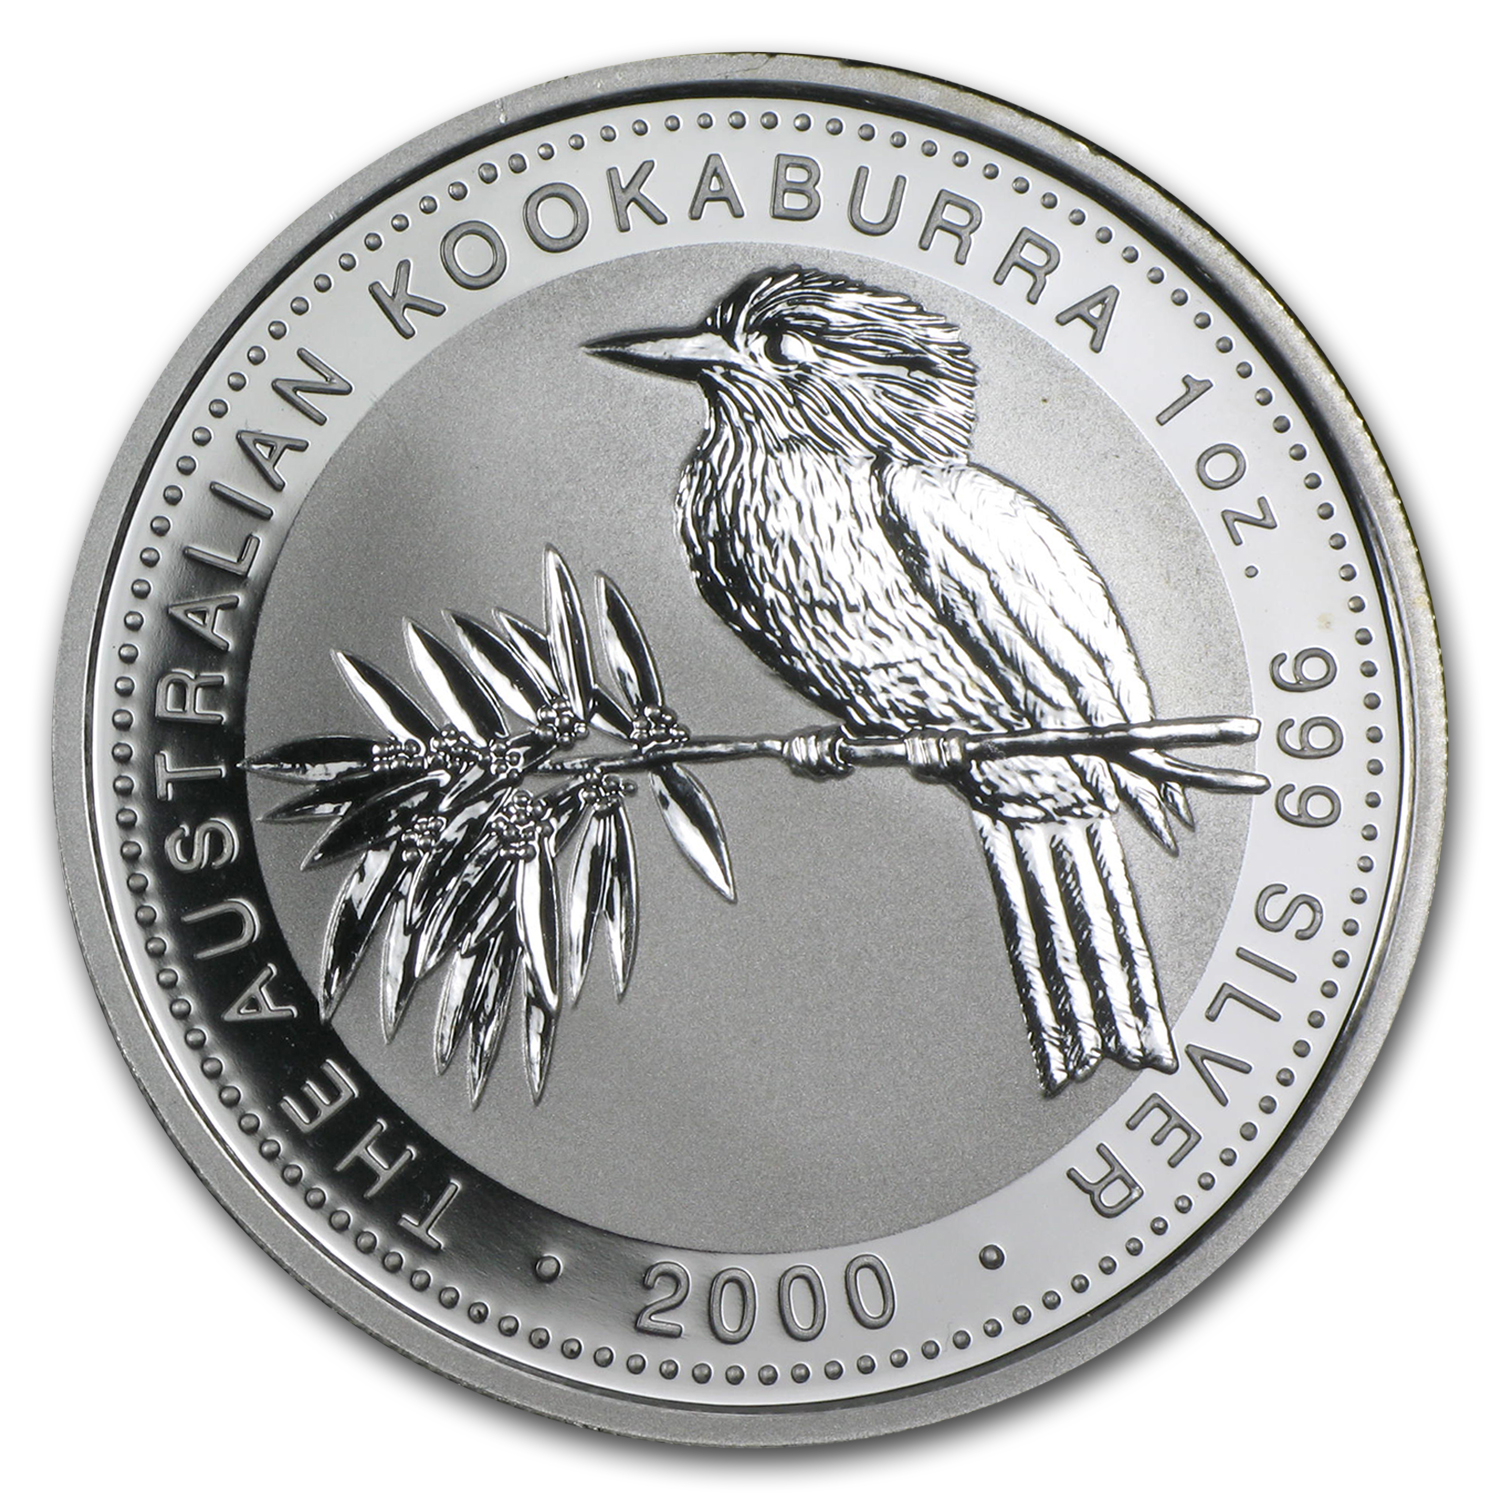 2000 Australia 1 oz Silver Kookaburra Proof (Spotty)